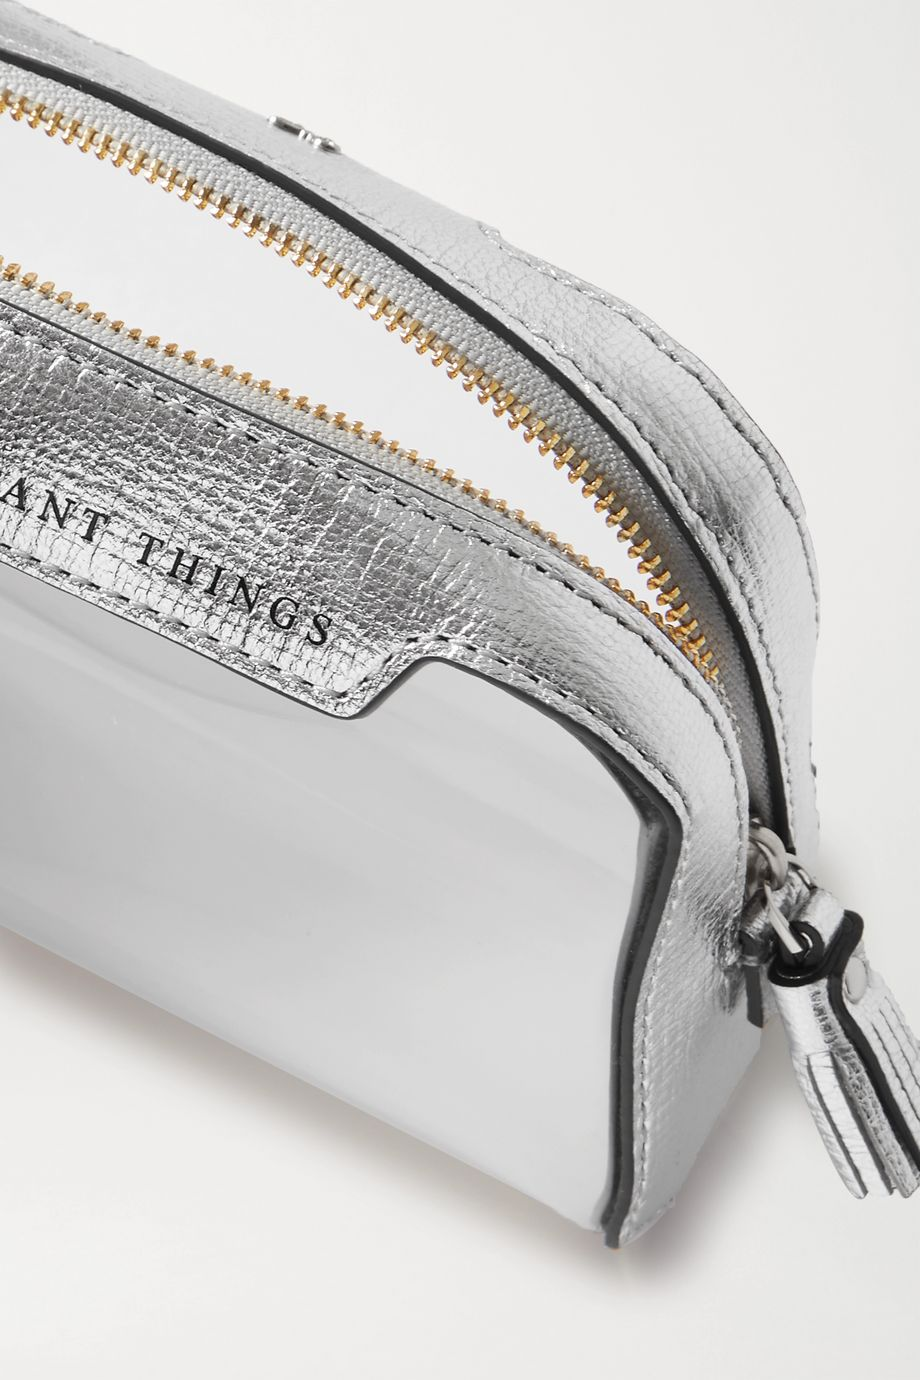 Anya Hindmarch Important Things metallic leather-trimmed PVC pouch